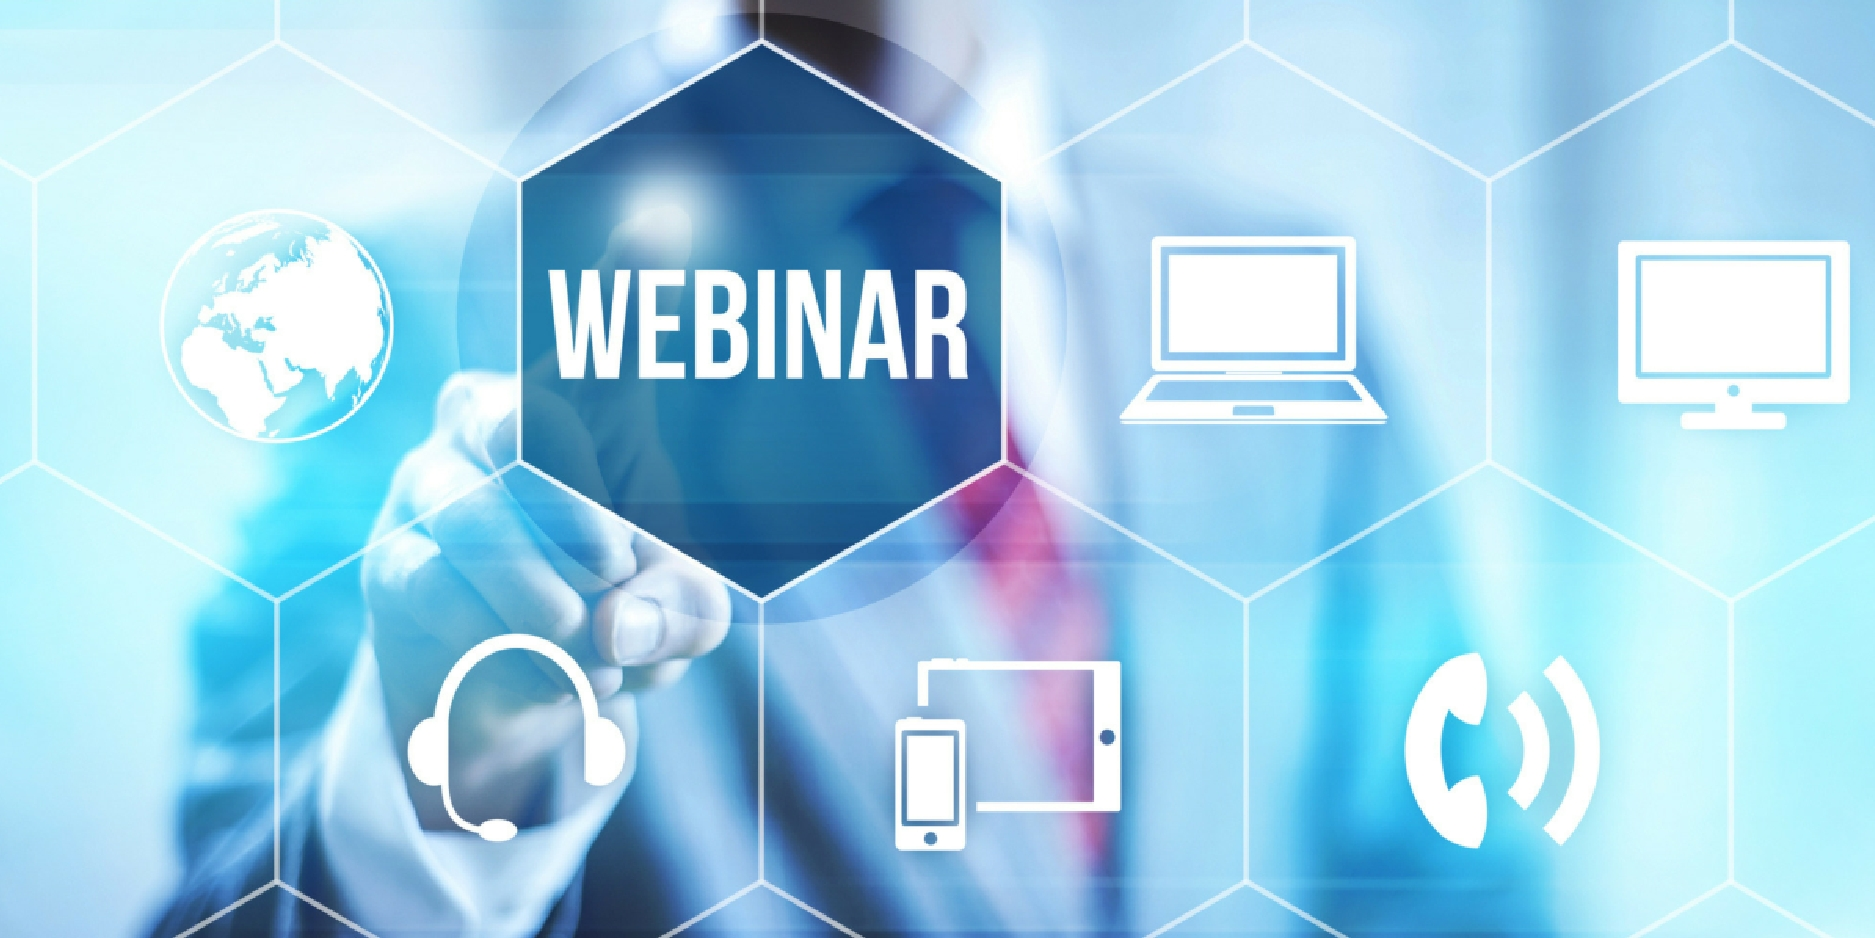 Webinar Producers Shares How and Why to Do a Webinar